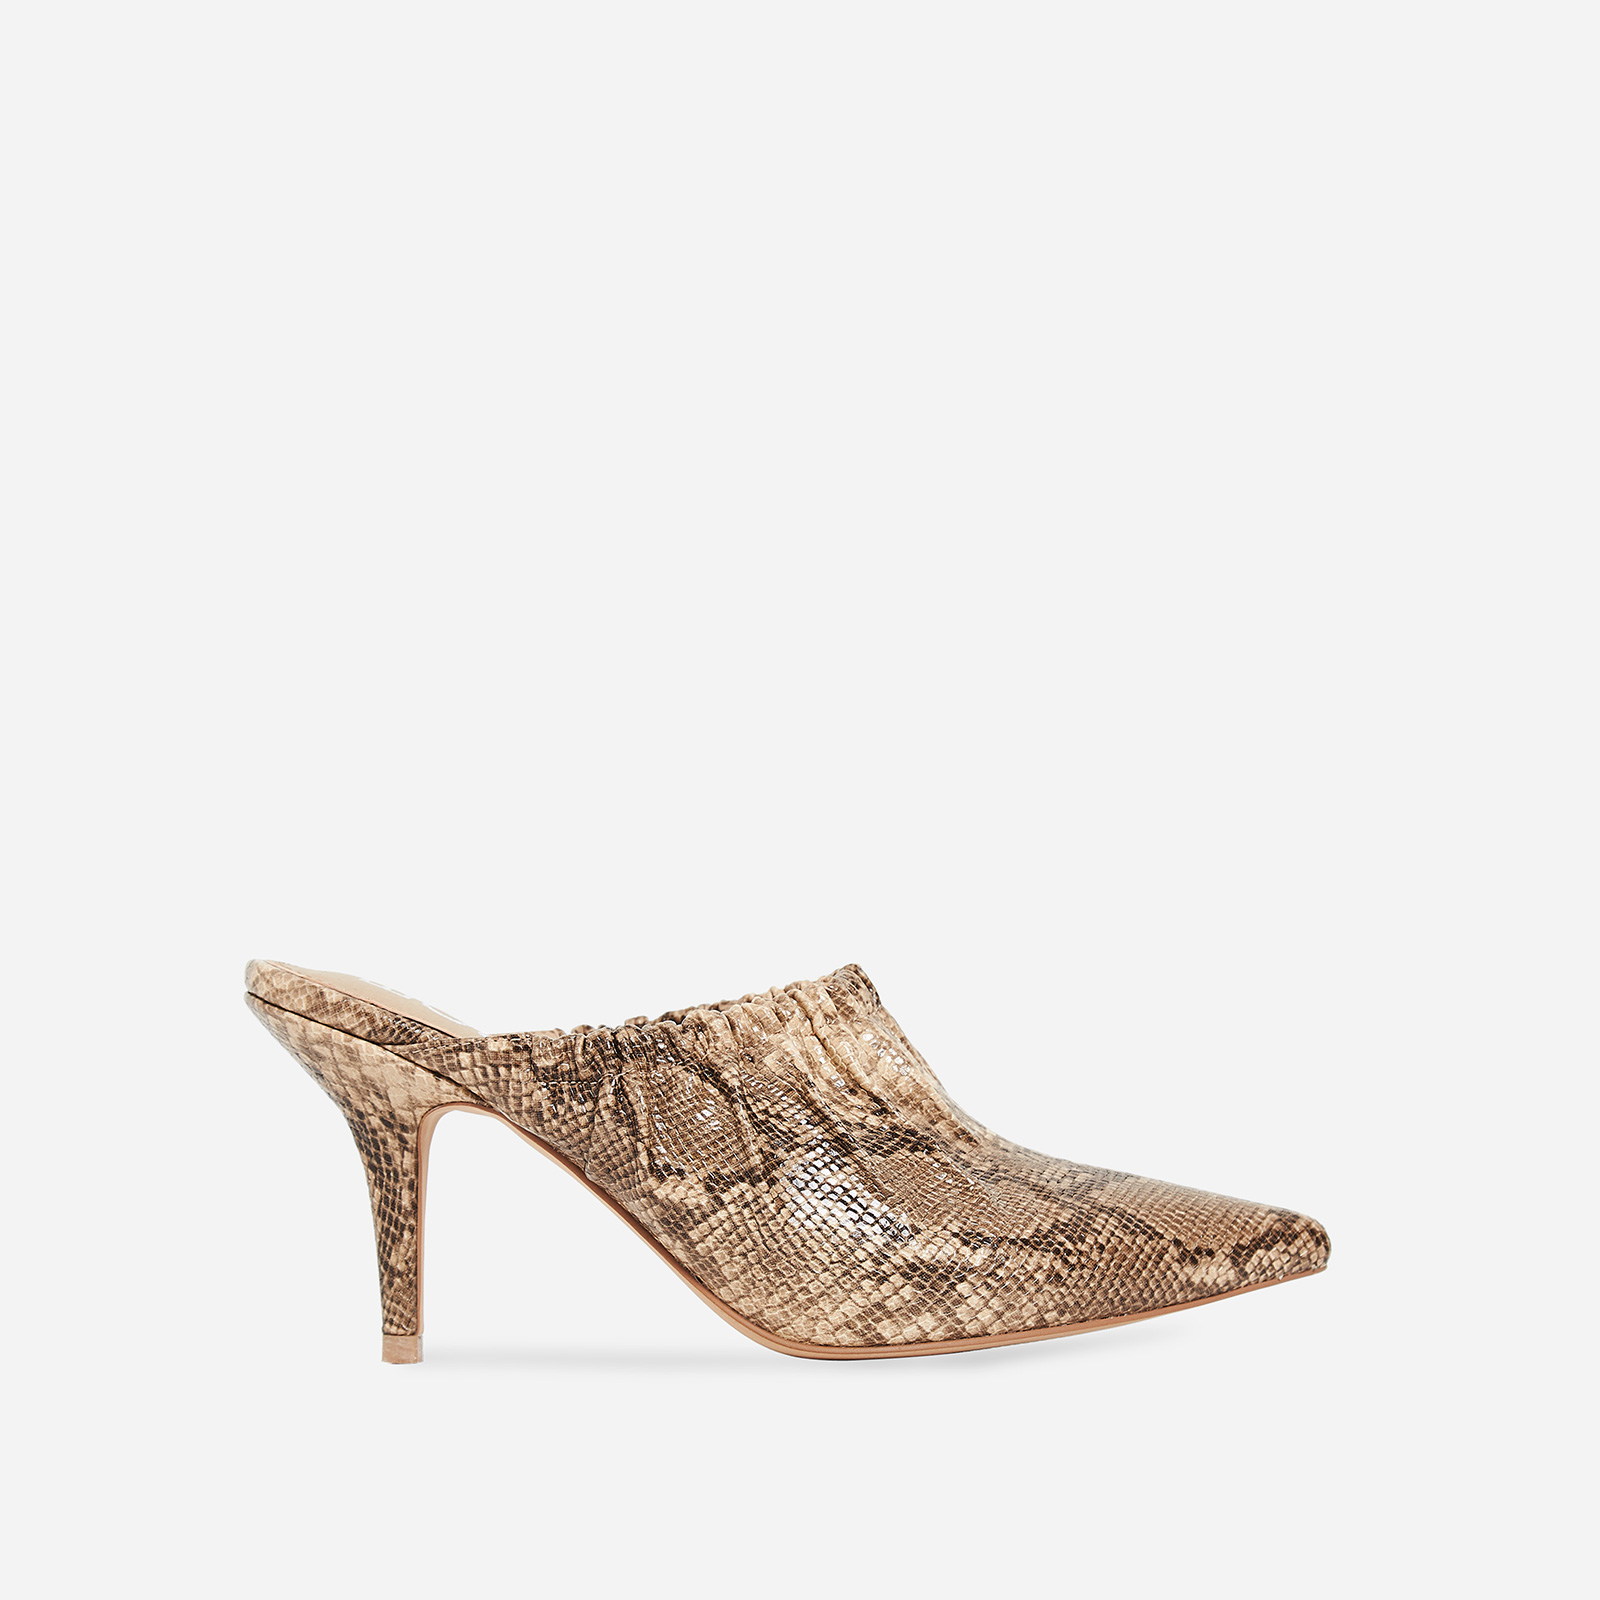 Kenza Pointed Heel Mule In Nude Snake Print Faux Leather